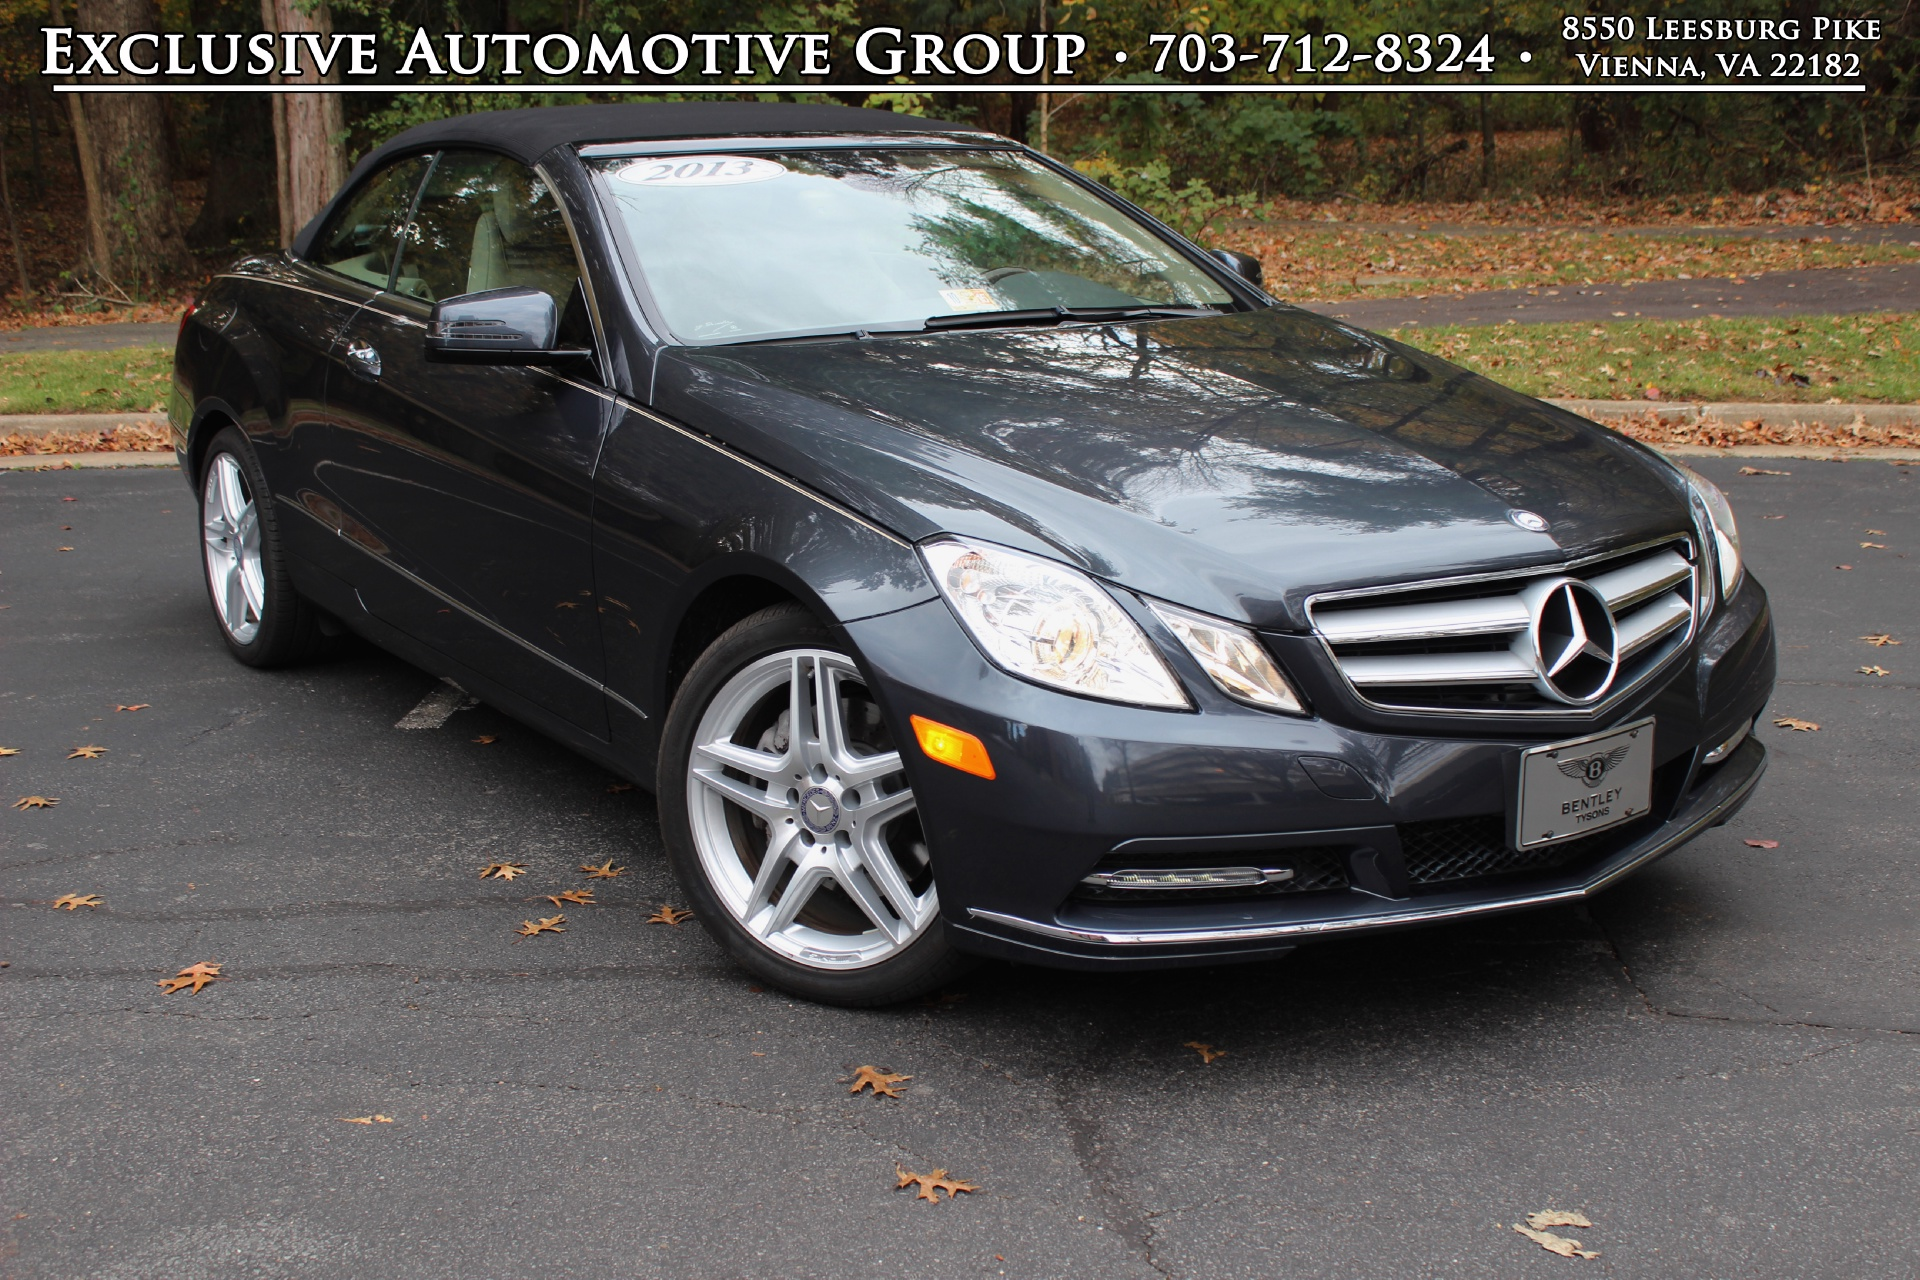 2013 mercedes benz e350 cabriolet stock p208908 for sale for Mercedes benz tysons service